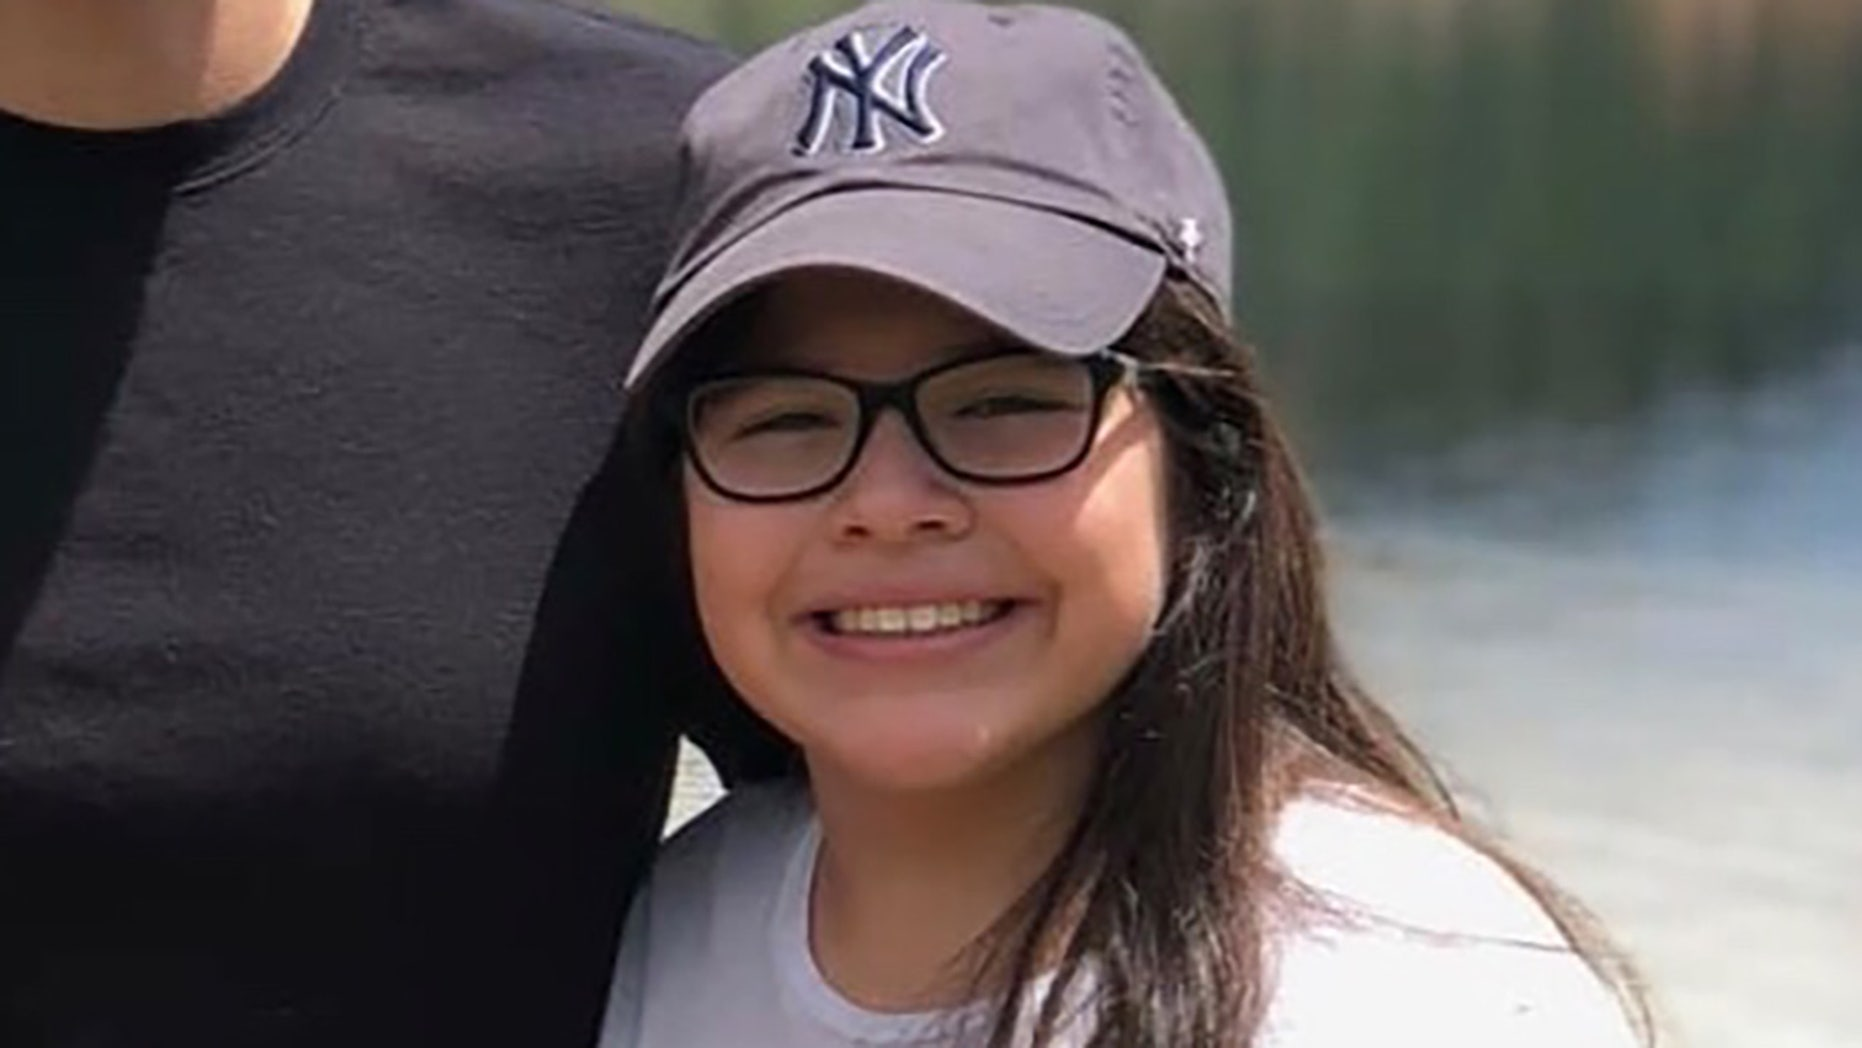 Angie Erives, 11, was fatally shot while seated in the kitchen of her family's North Las Vegas home Thursday night when shooters intent on gang-related retaliation targeted the wrong house, police said.